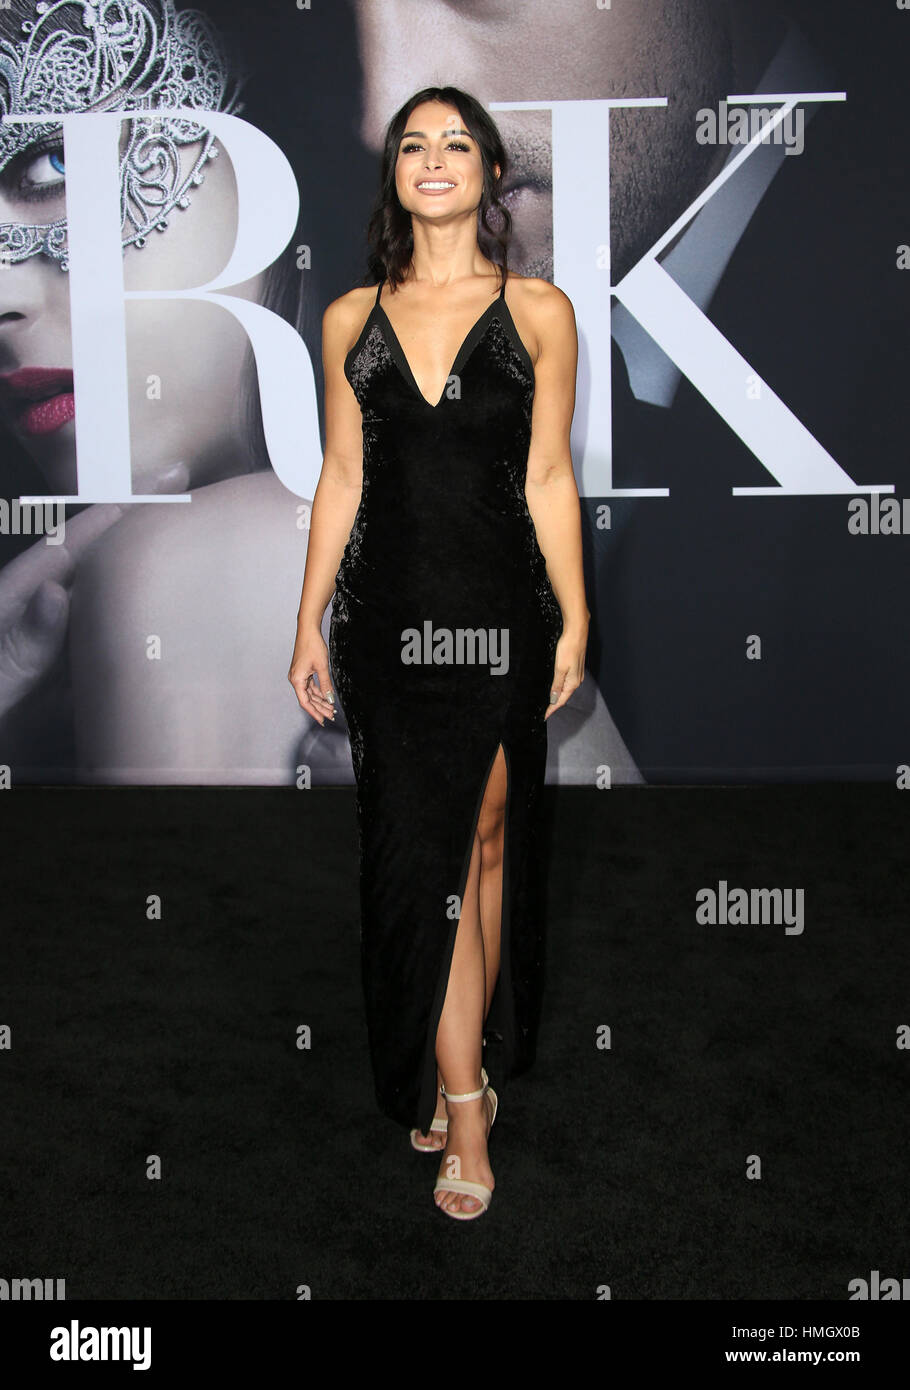 Discussion on this topic: Katie salmon topless sexy 27 Photos, ashley-iaconetti-fifty-shades-darker-premiere-in/